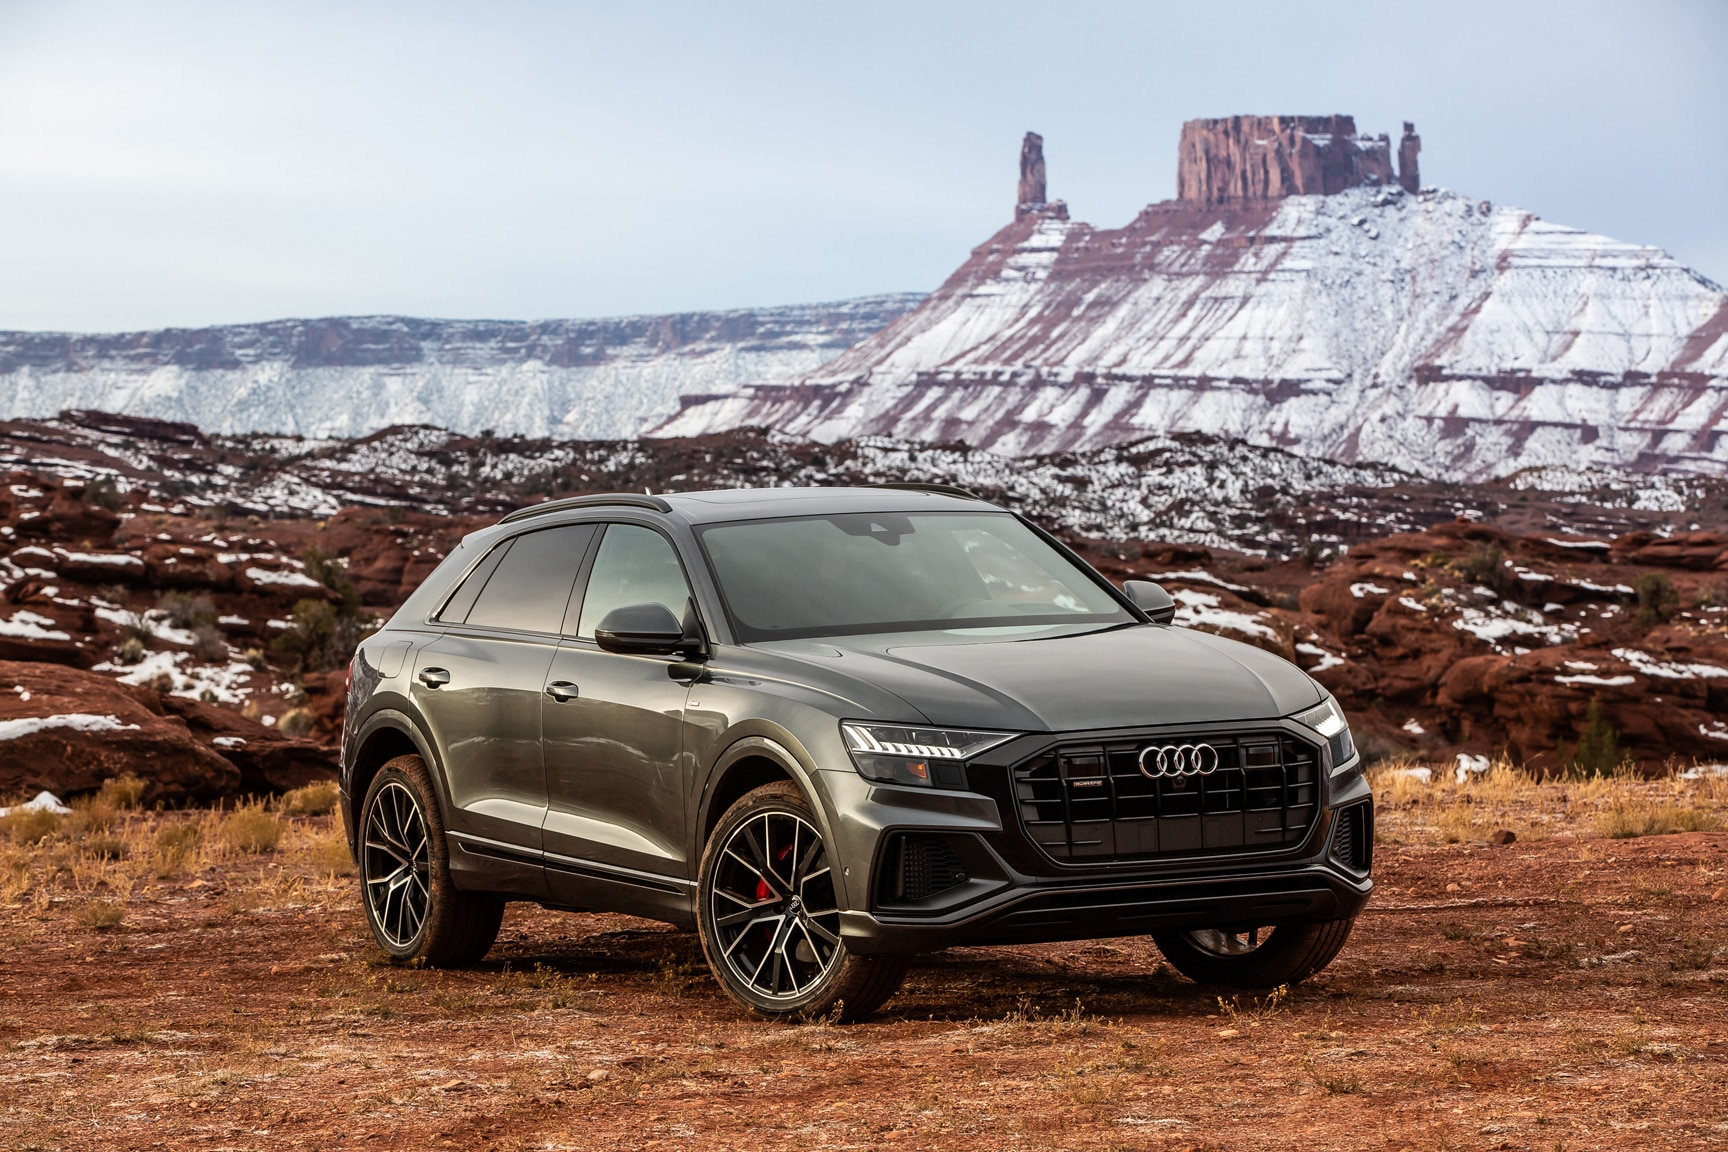 New 2020 Audi Q8 Engine Exterior Interior And Price New Suvs